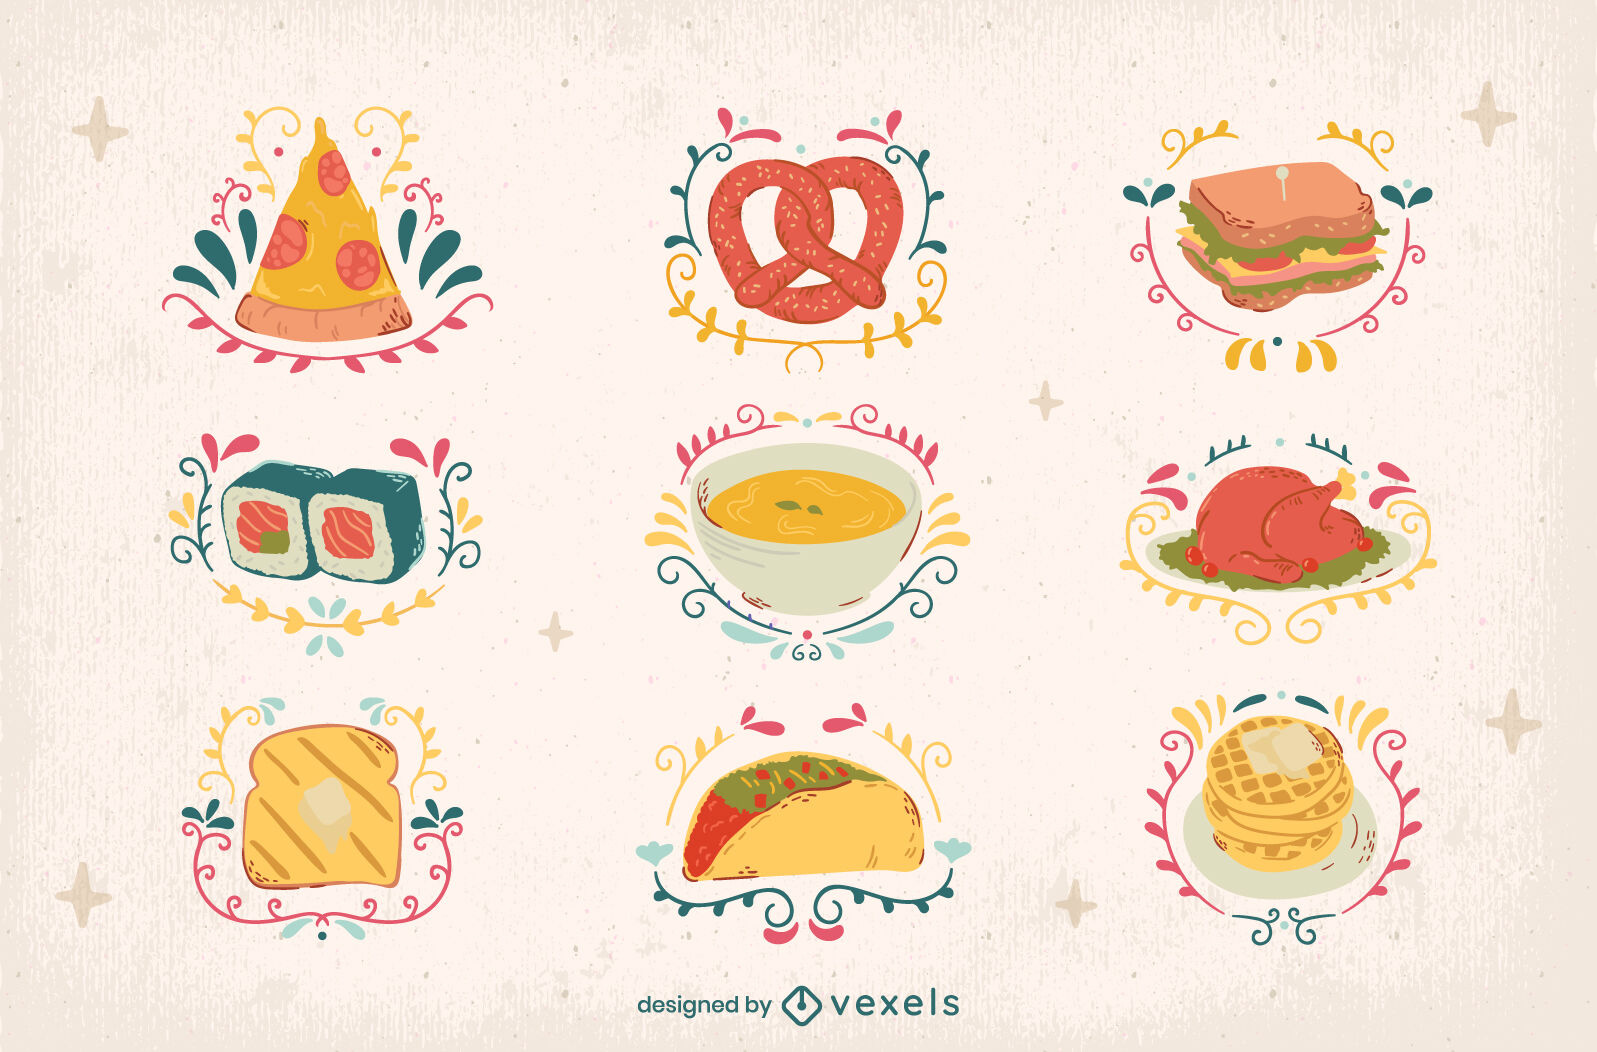 Ornamented food and meal elements illustrations